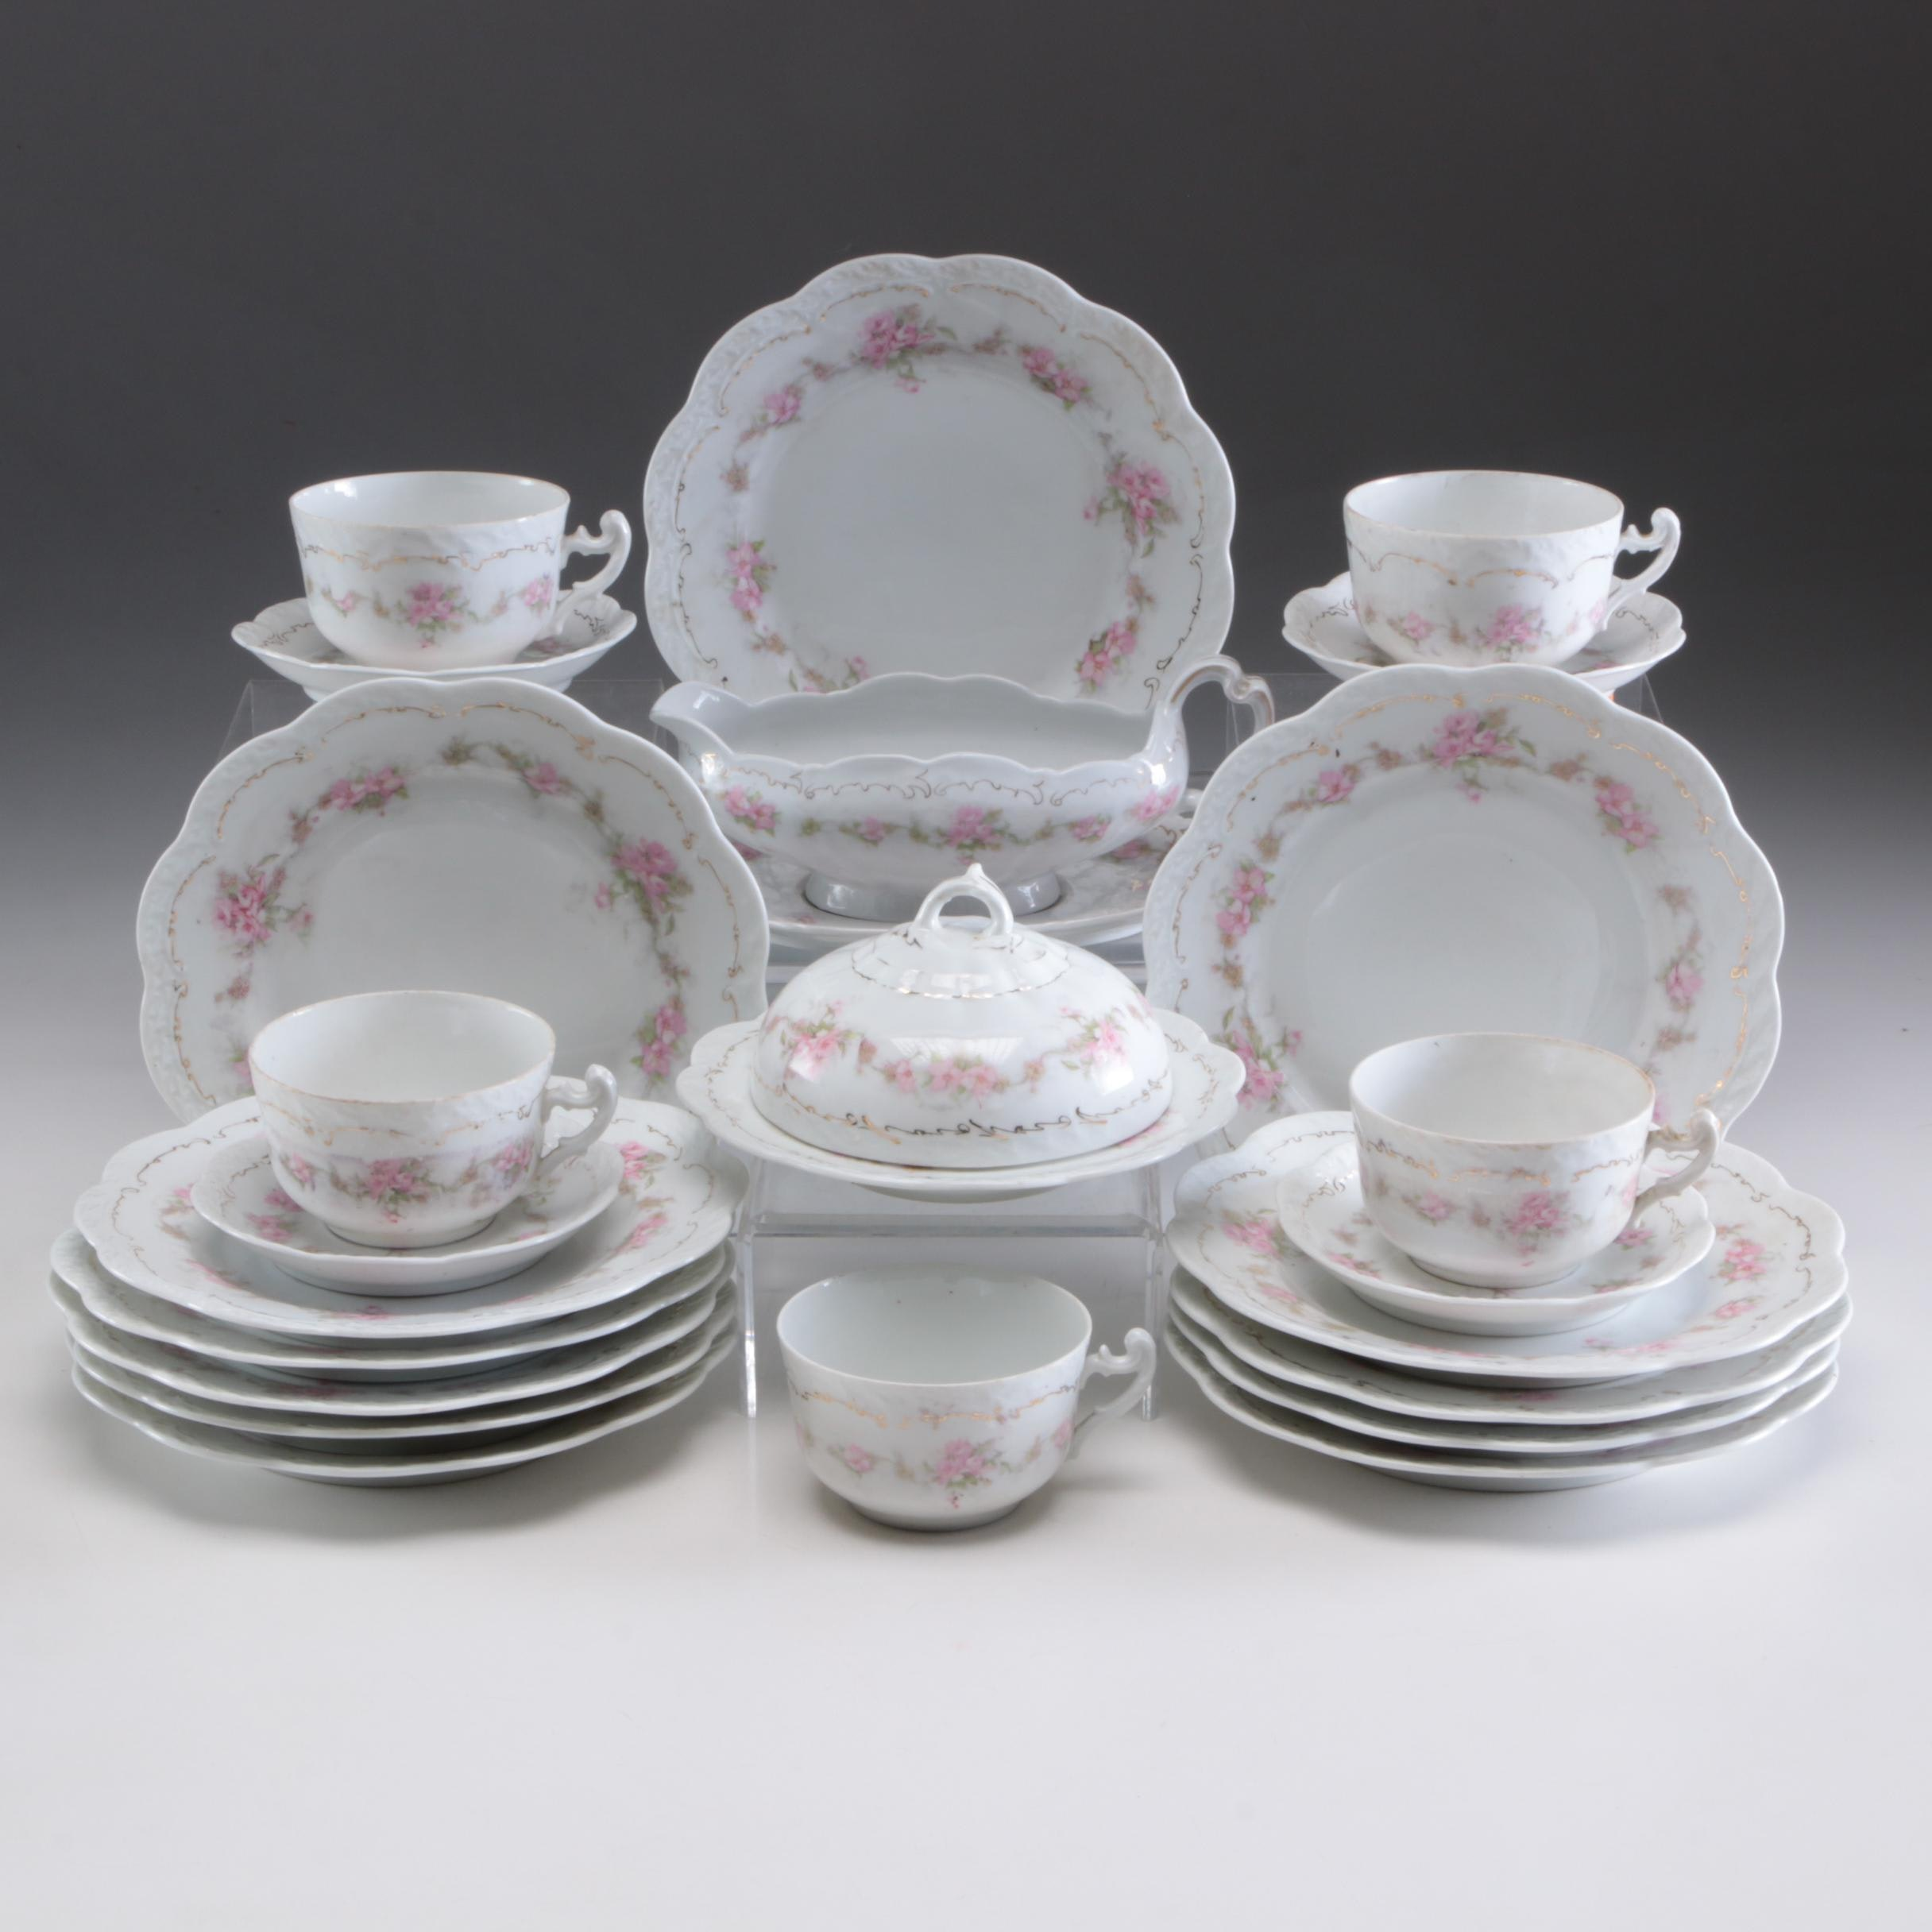 F.B. & Co. St. Regis Porcelain Dinnerware, Early to Mid-20th Century